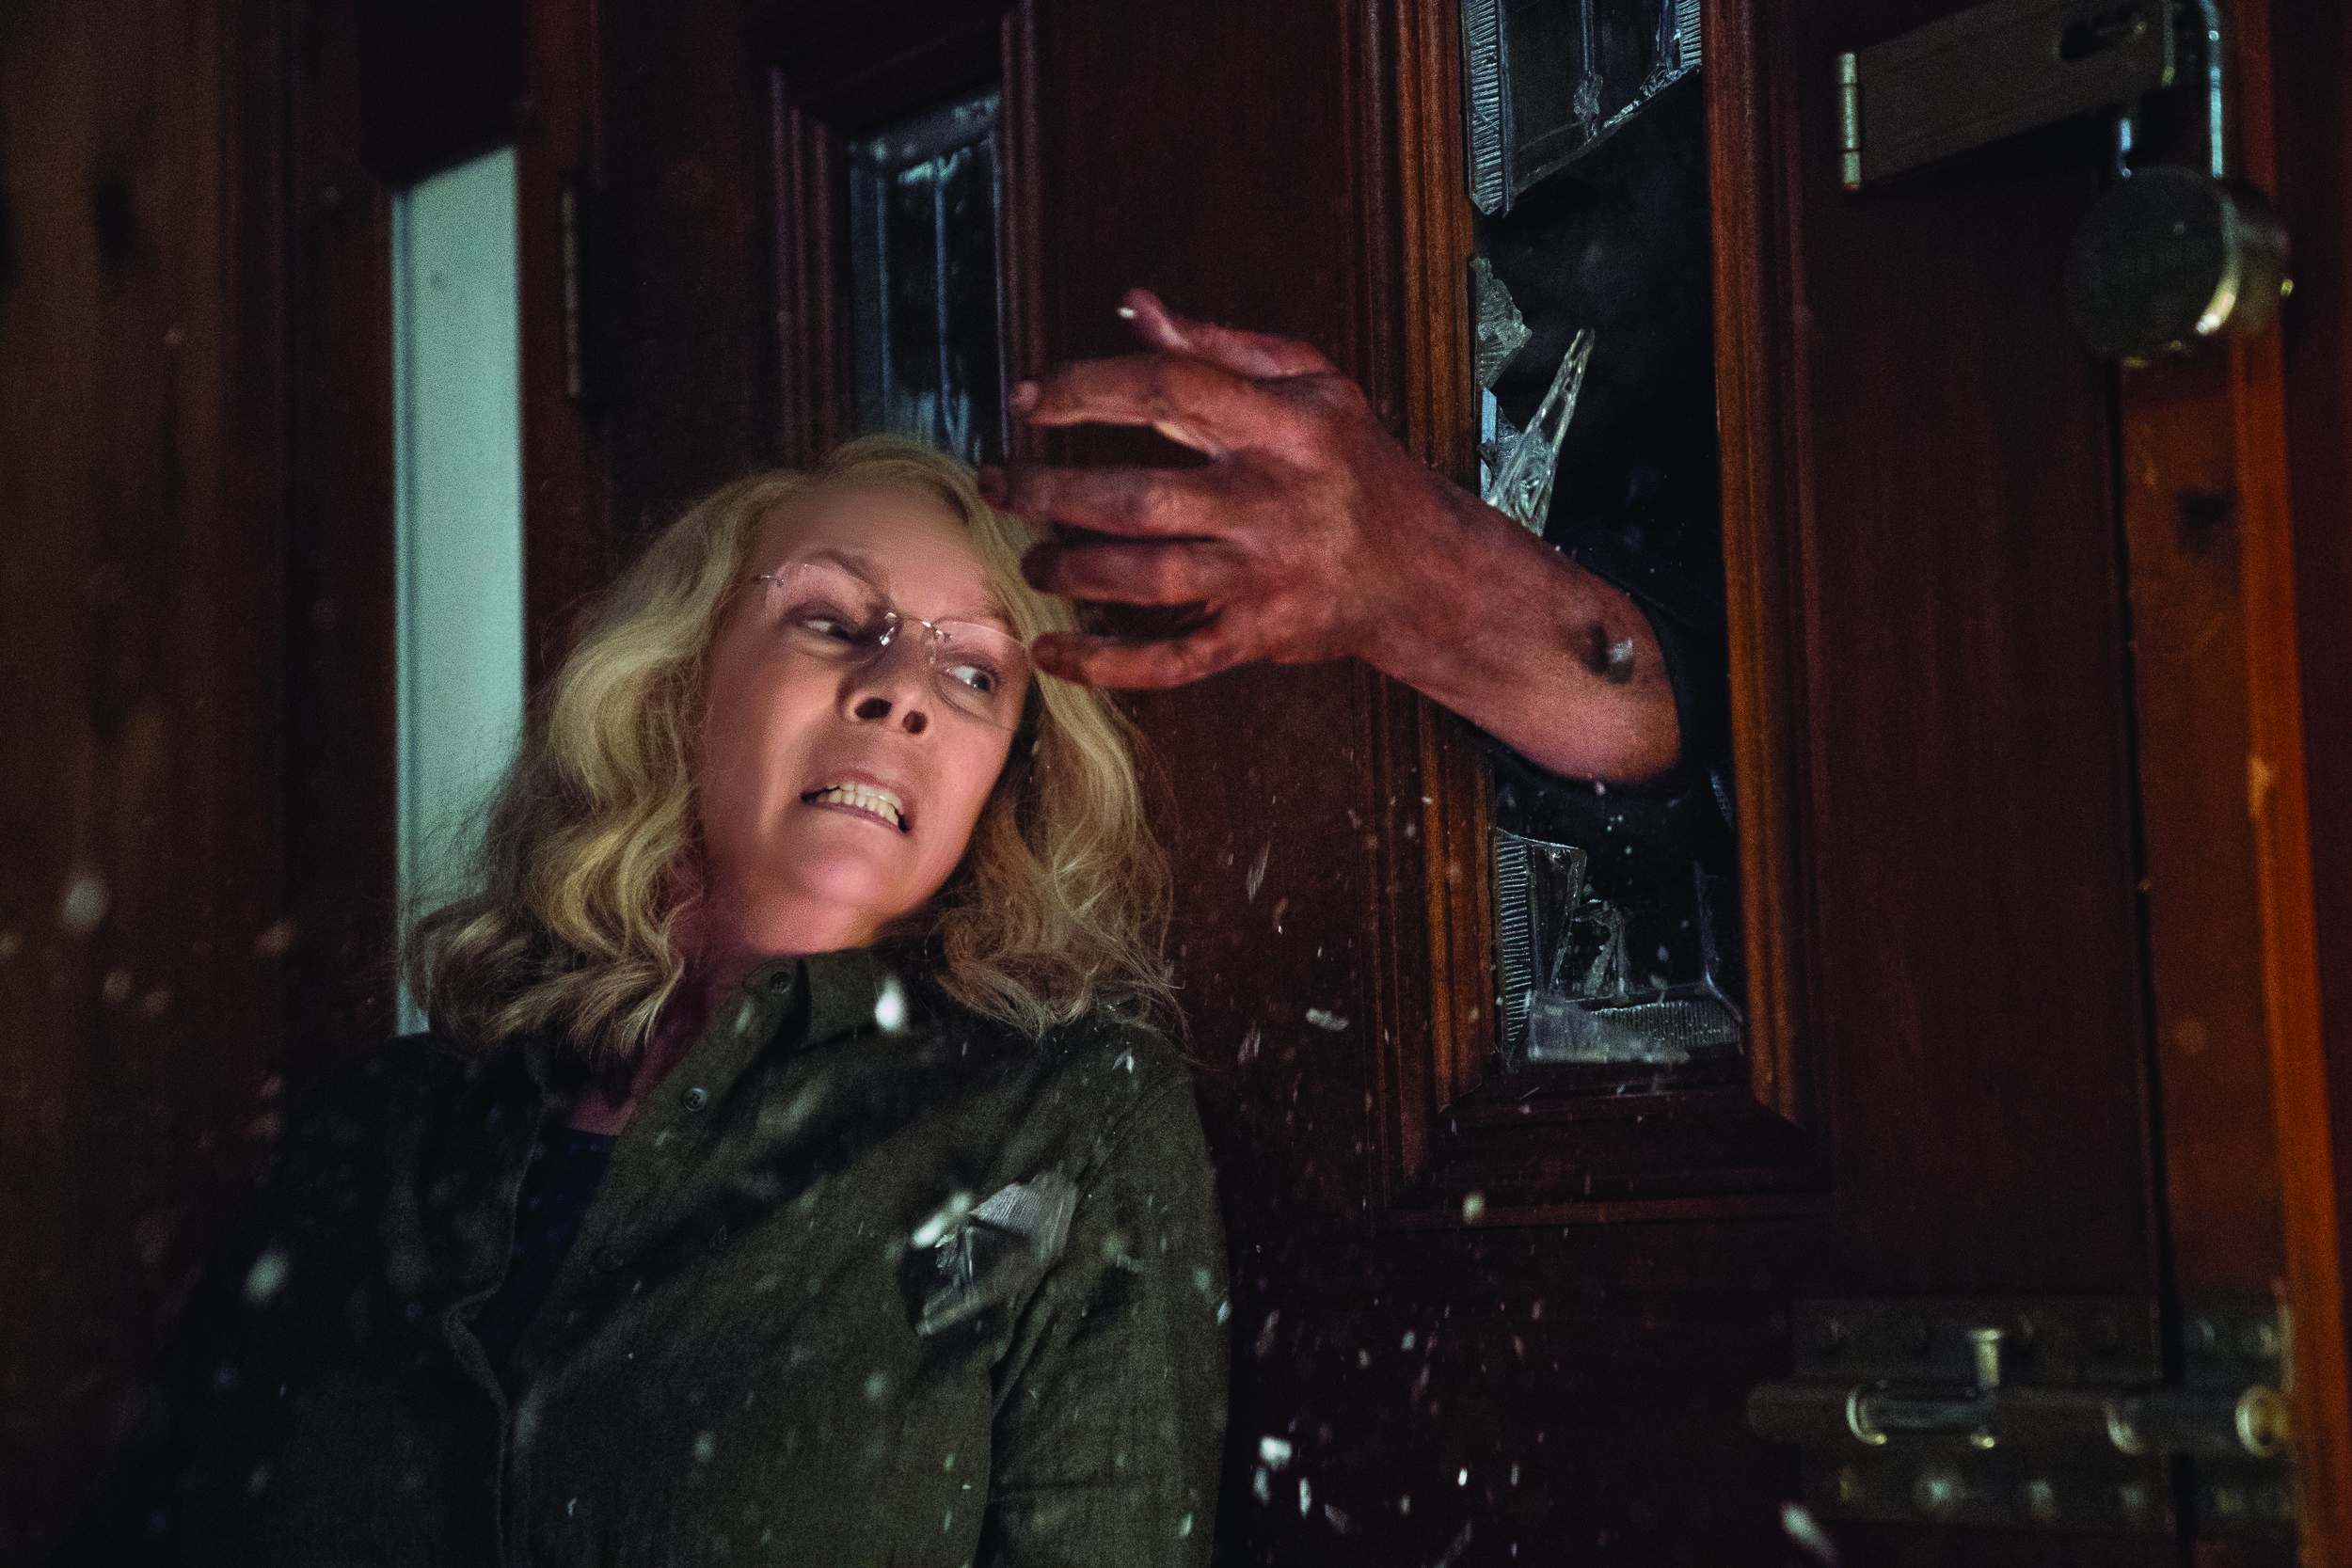 """Laurie Strode (Jamie Lee Curtis) fights off Michael Myers once again in """"Halloween,"""" a continuation of the story begun in John Carpenter's 1978 horror classic. (Photo by Ryan Green, courtesy Universal Pictures)"""